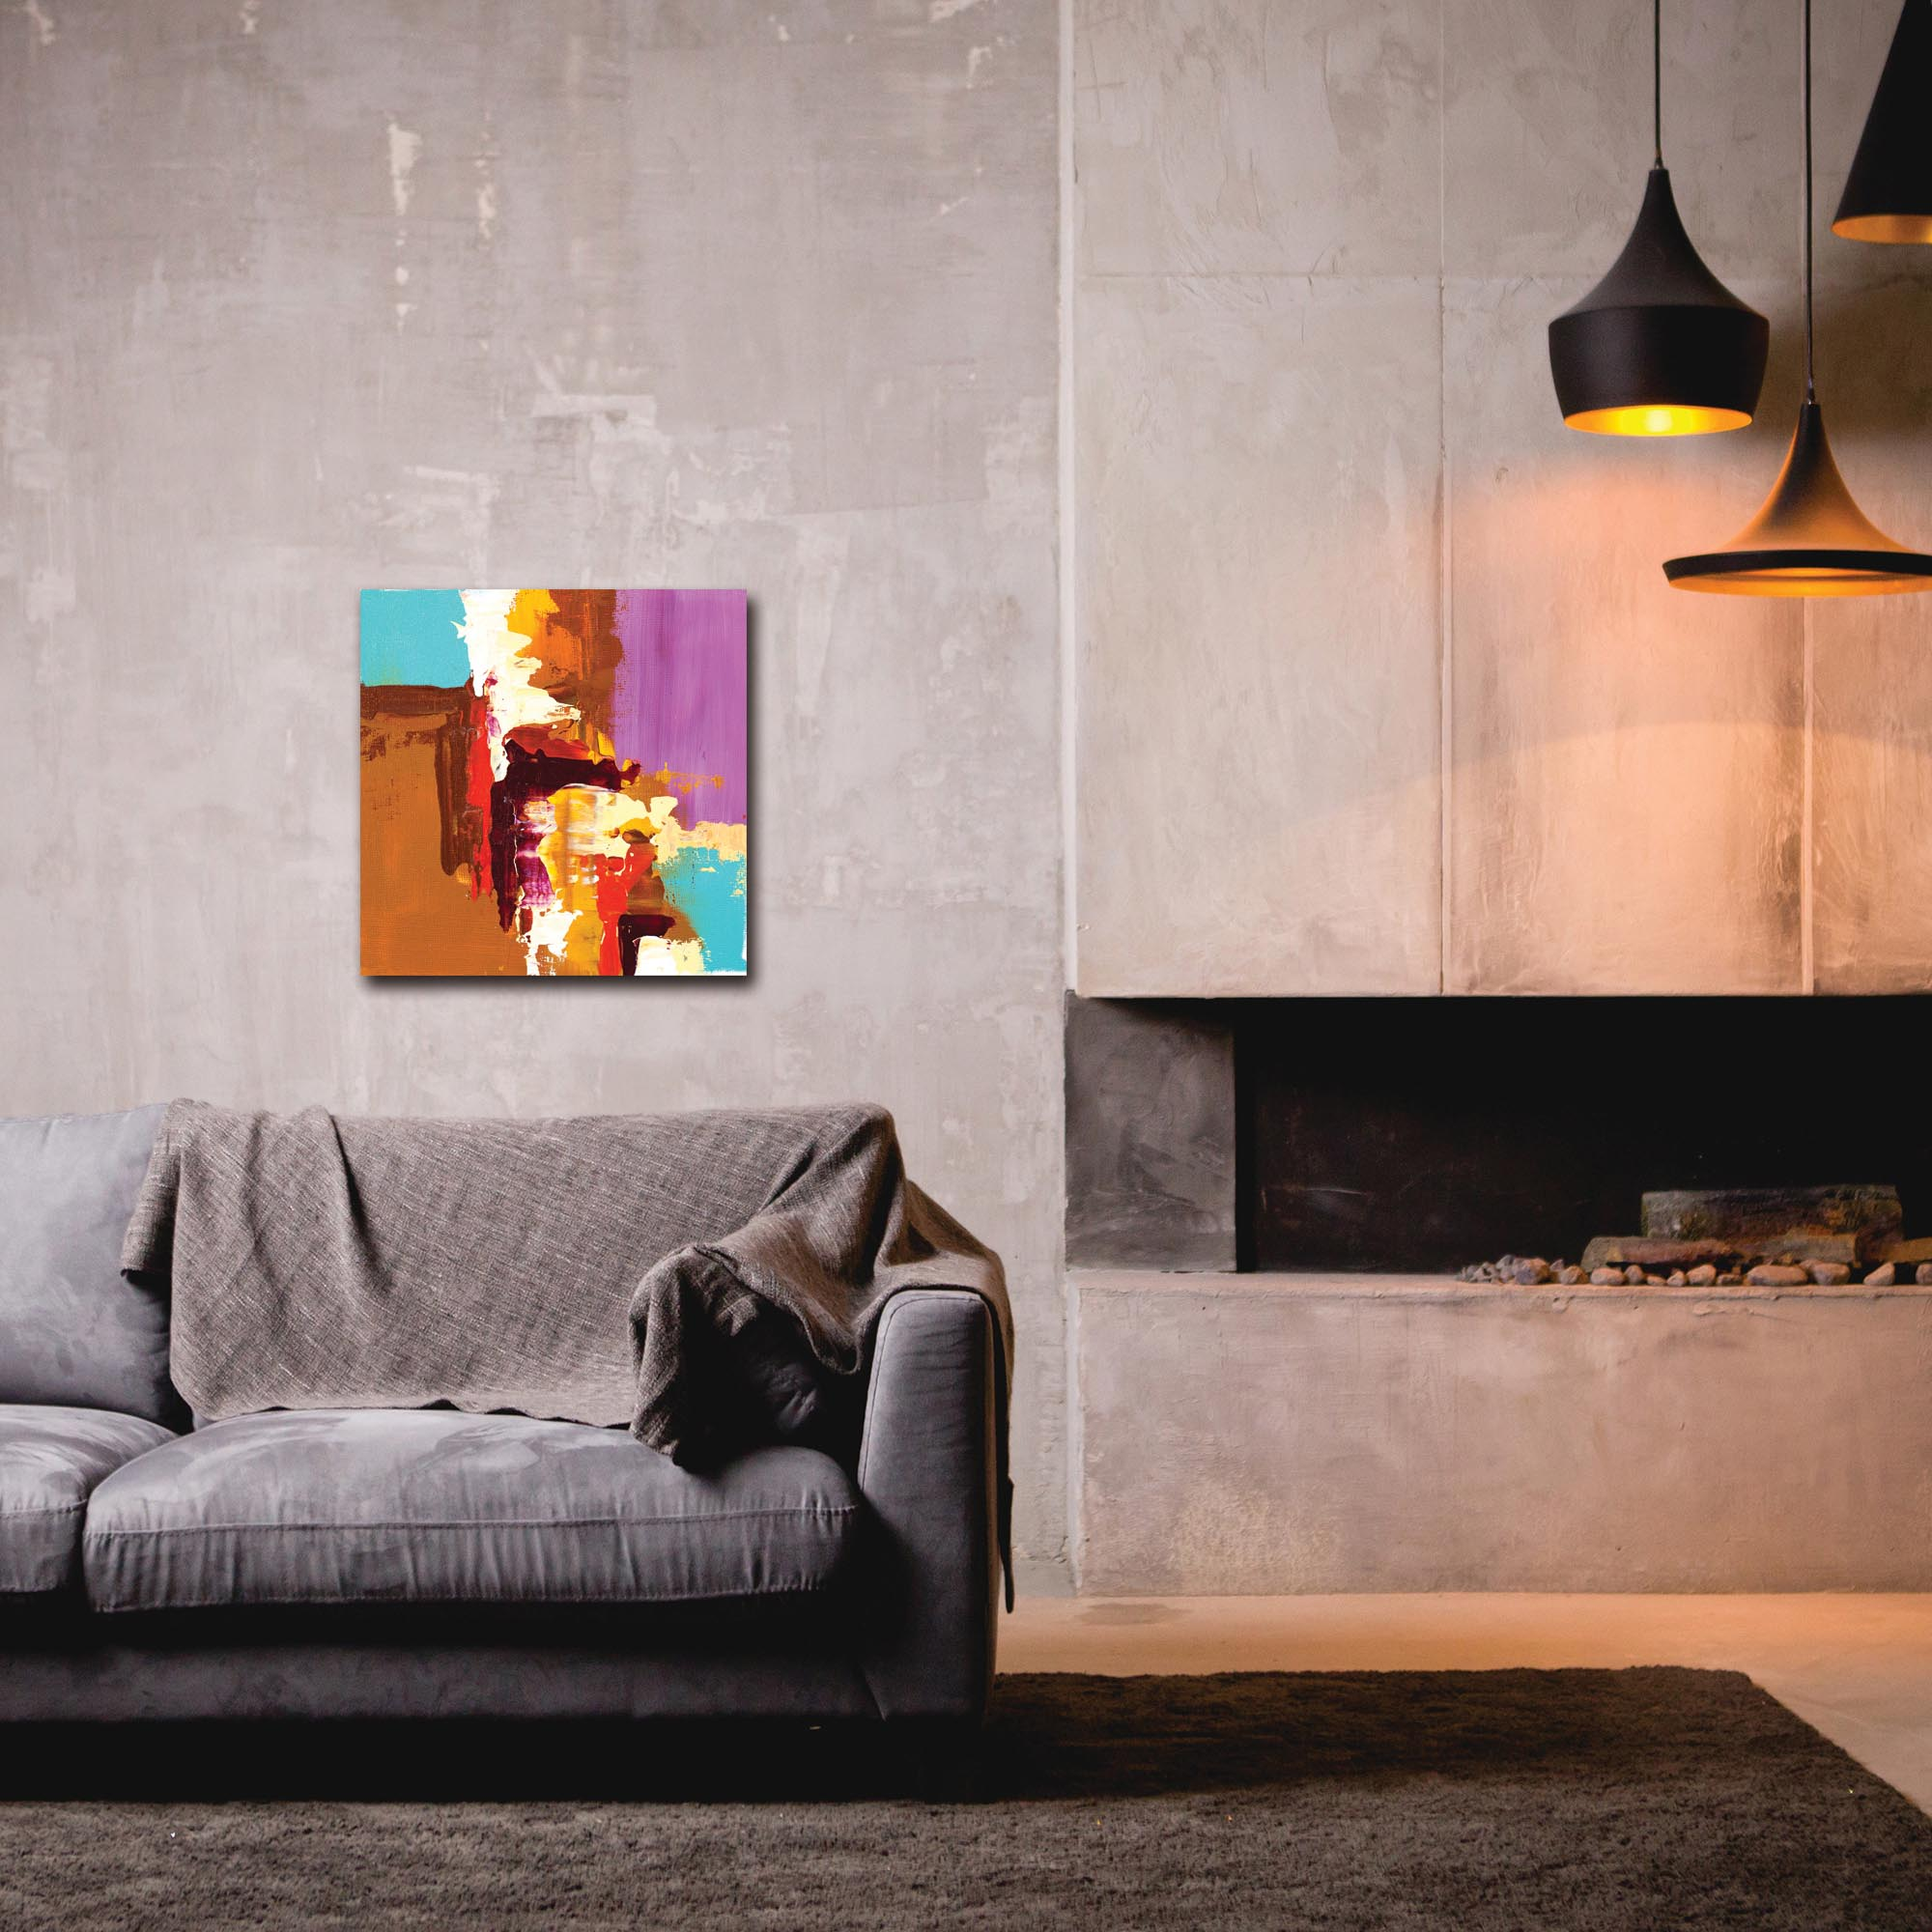 Abstract Wall Art 'Urban Life 12' - Urban Decor on Metal or Plexiglass - Lifestyle View